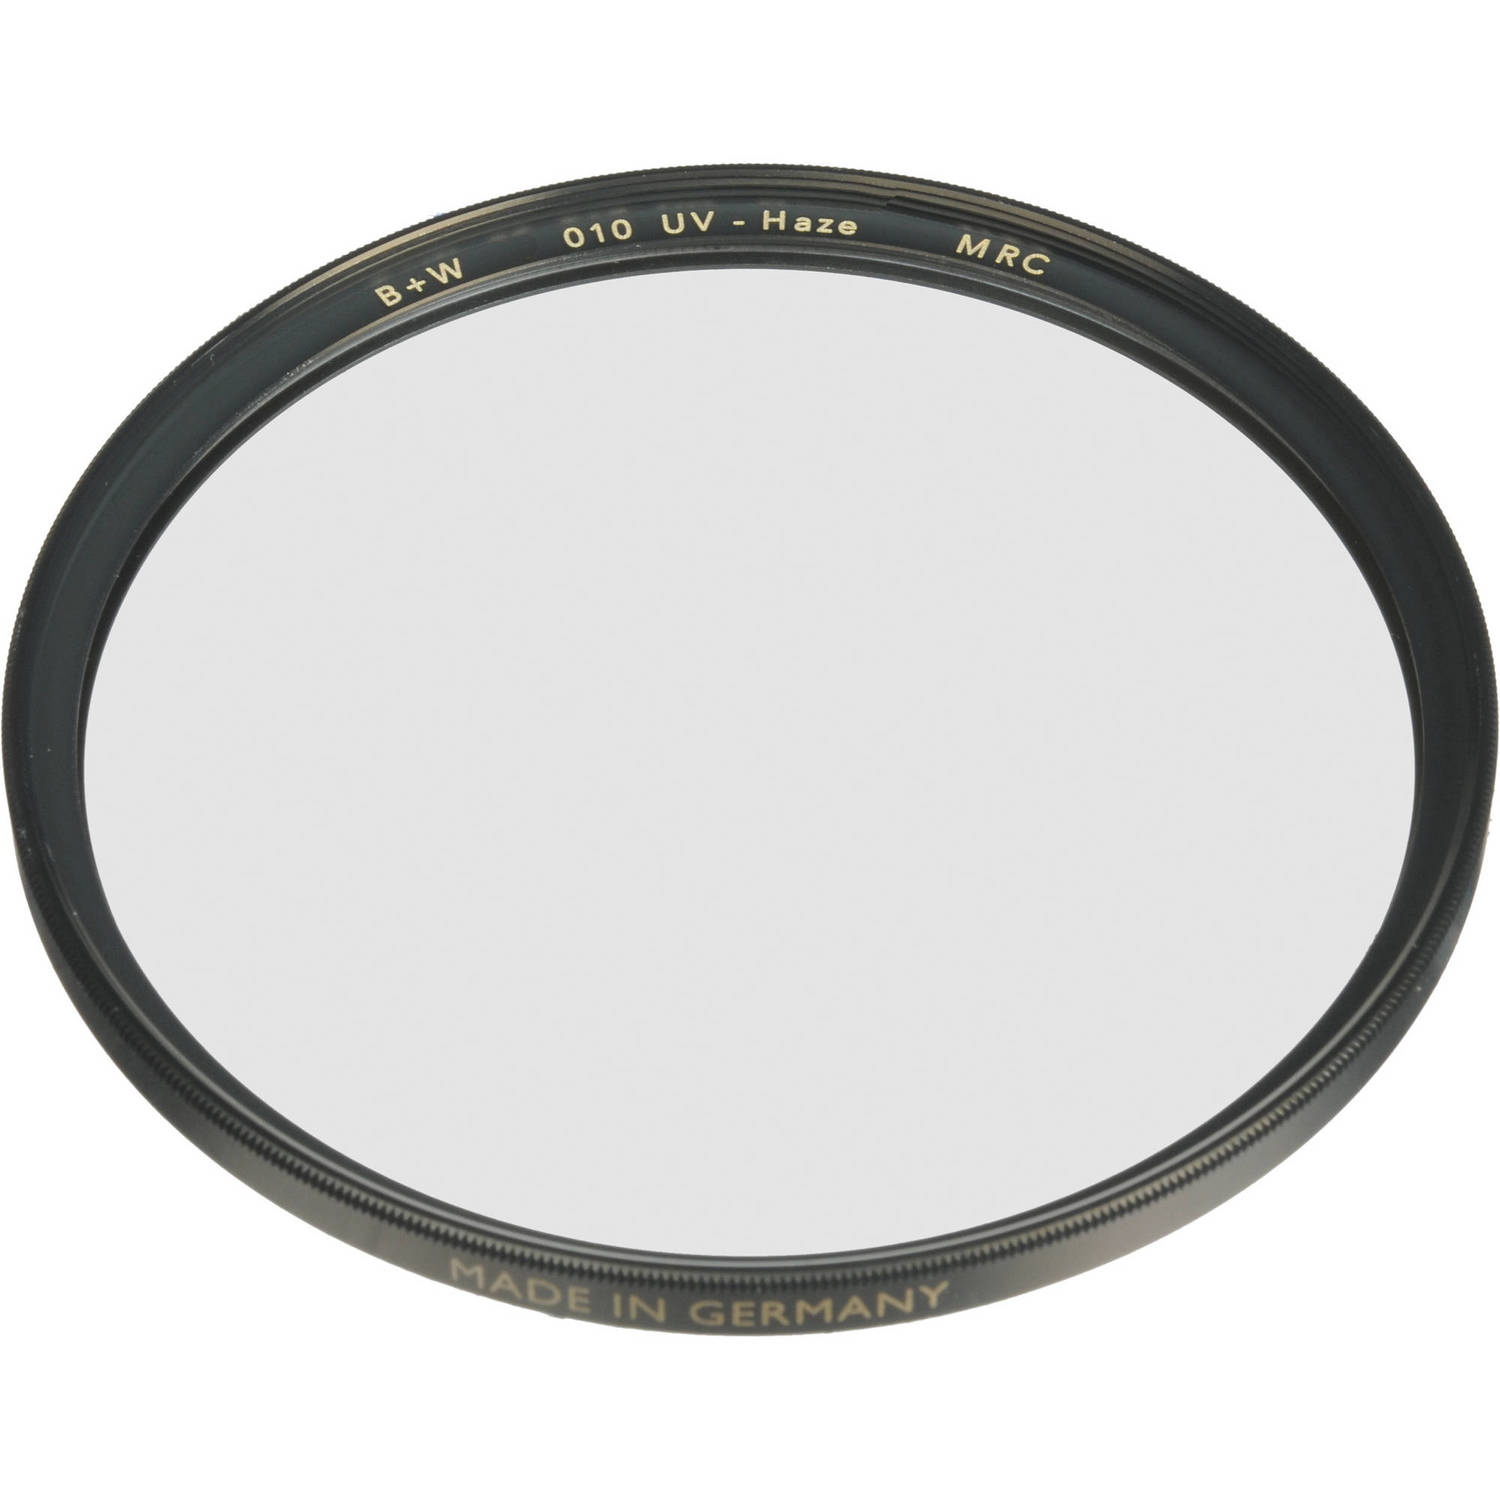 Haze 1A Multicoated UV For Sony a77II Multithreaded Glass Filter 49mm